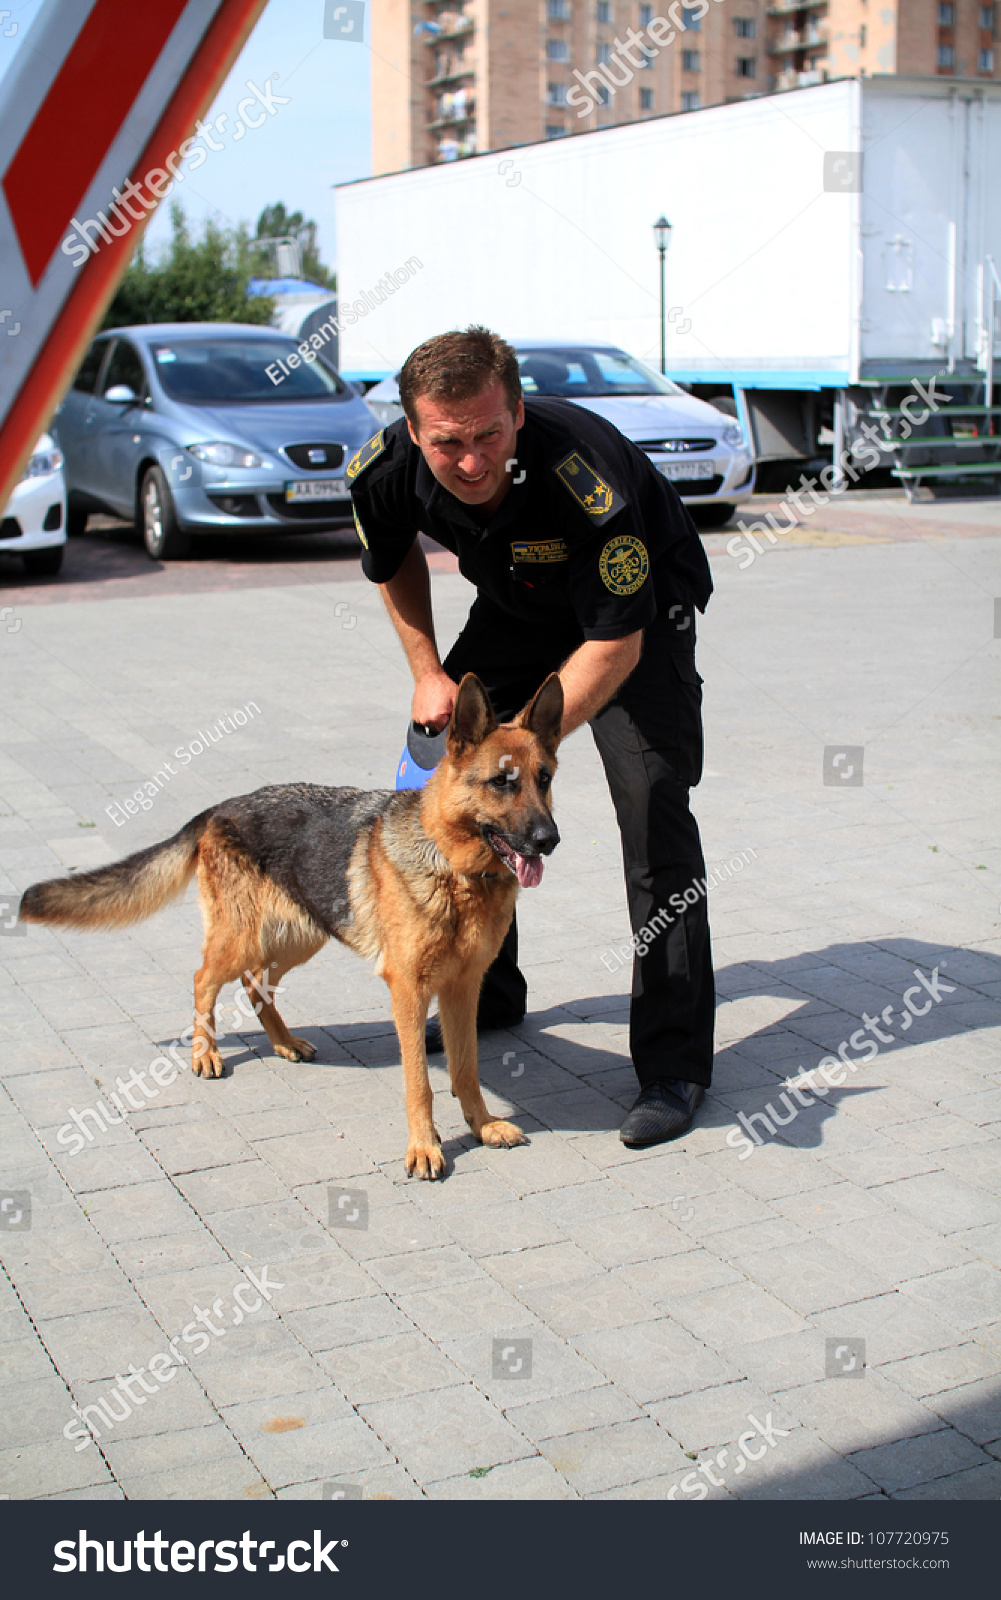 how to become a drug dog handler canada